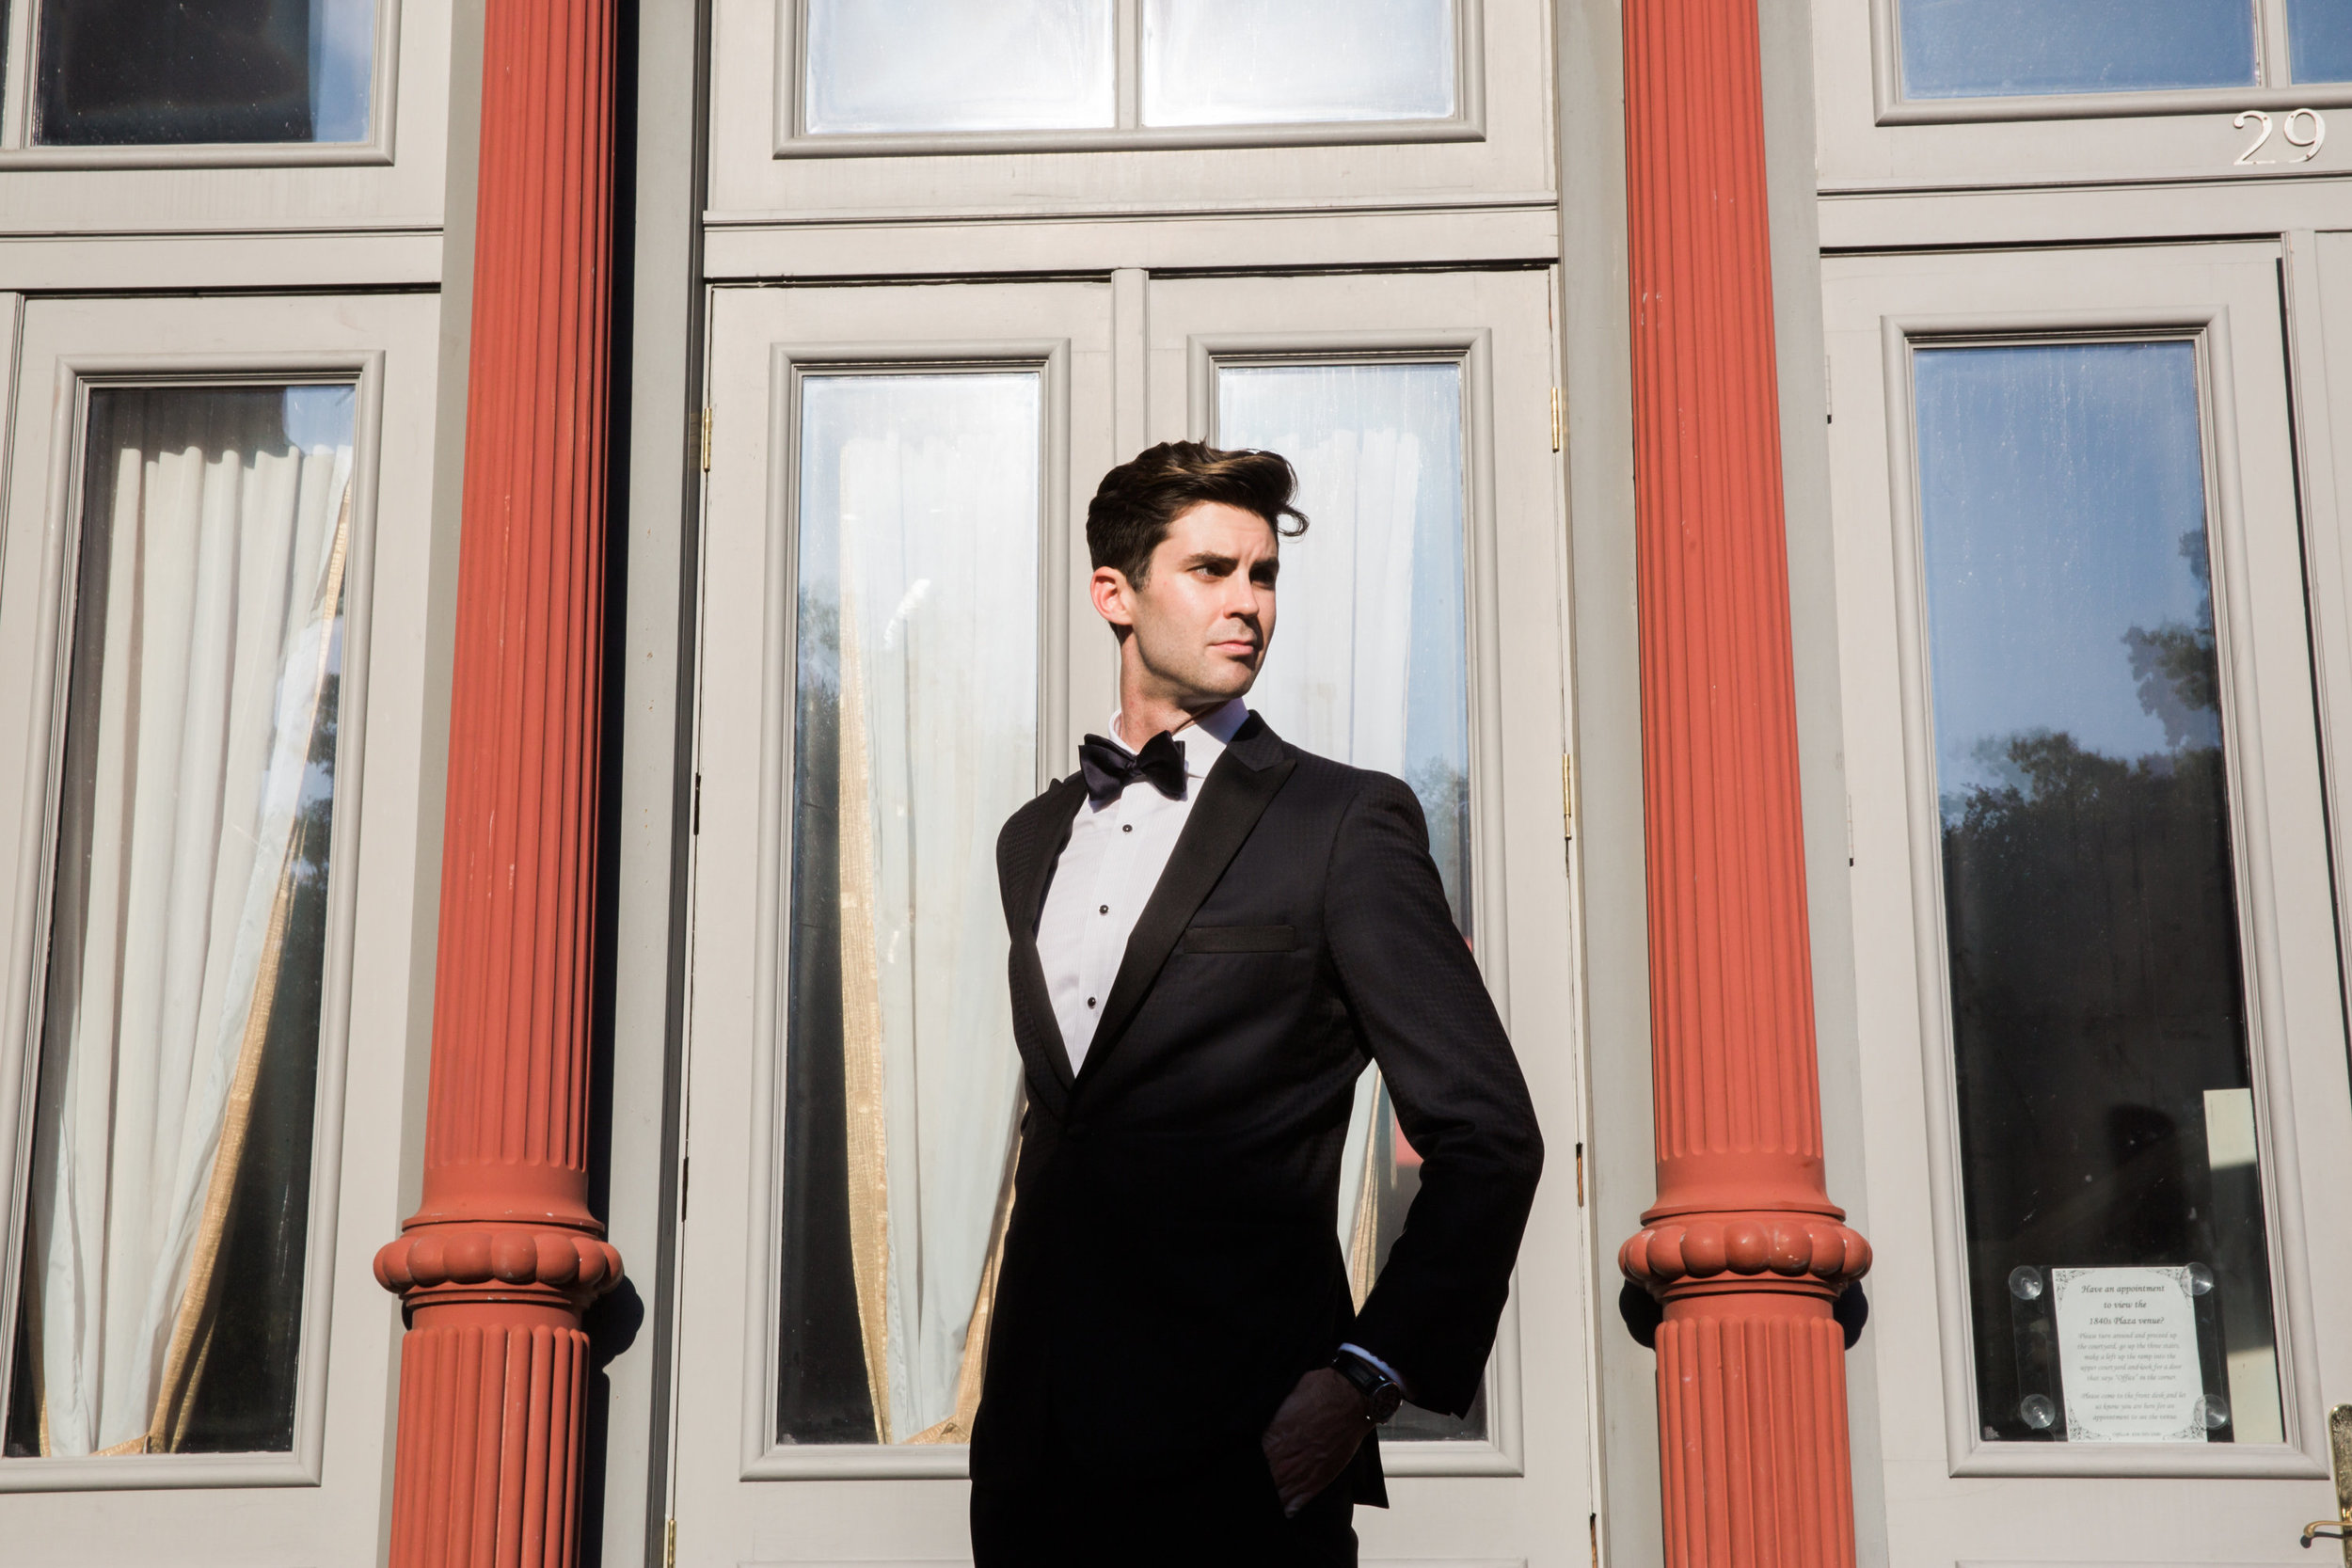 Menswear: Tom James Collection, Taylor Wood the Clothier